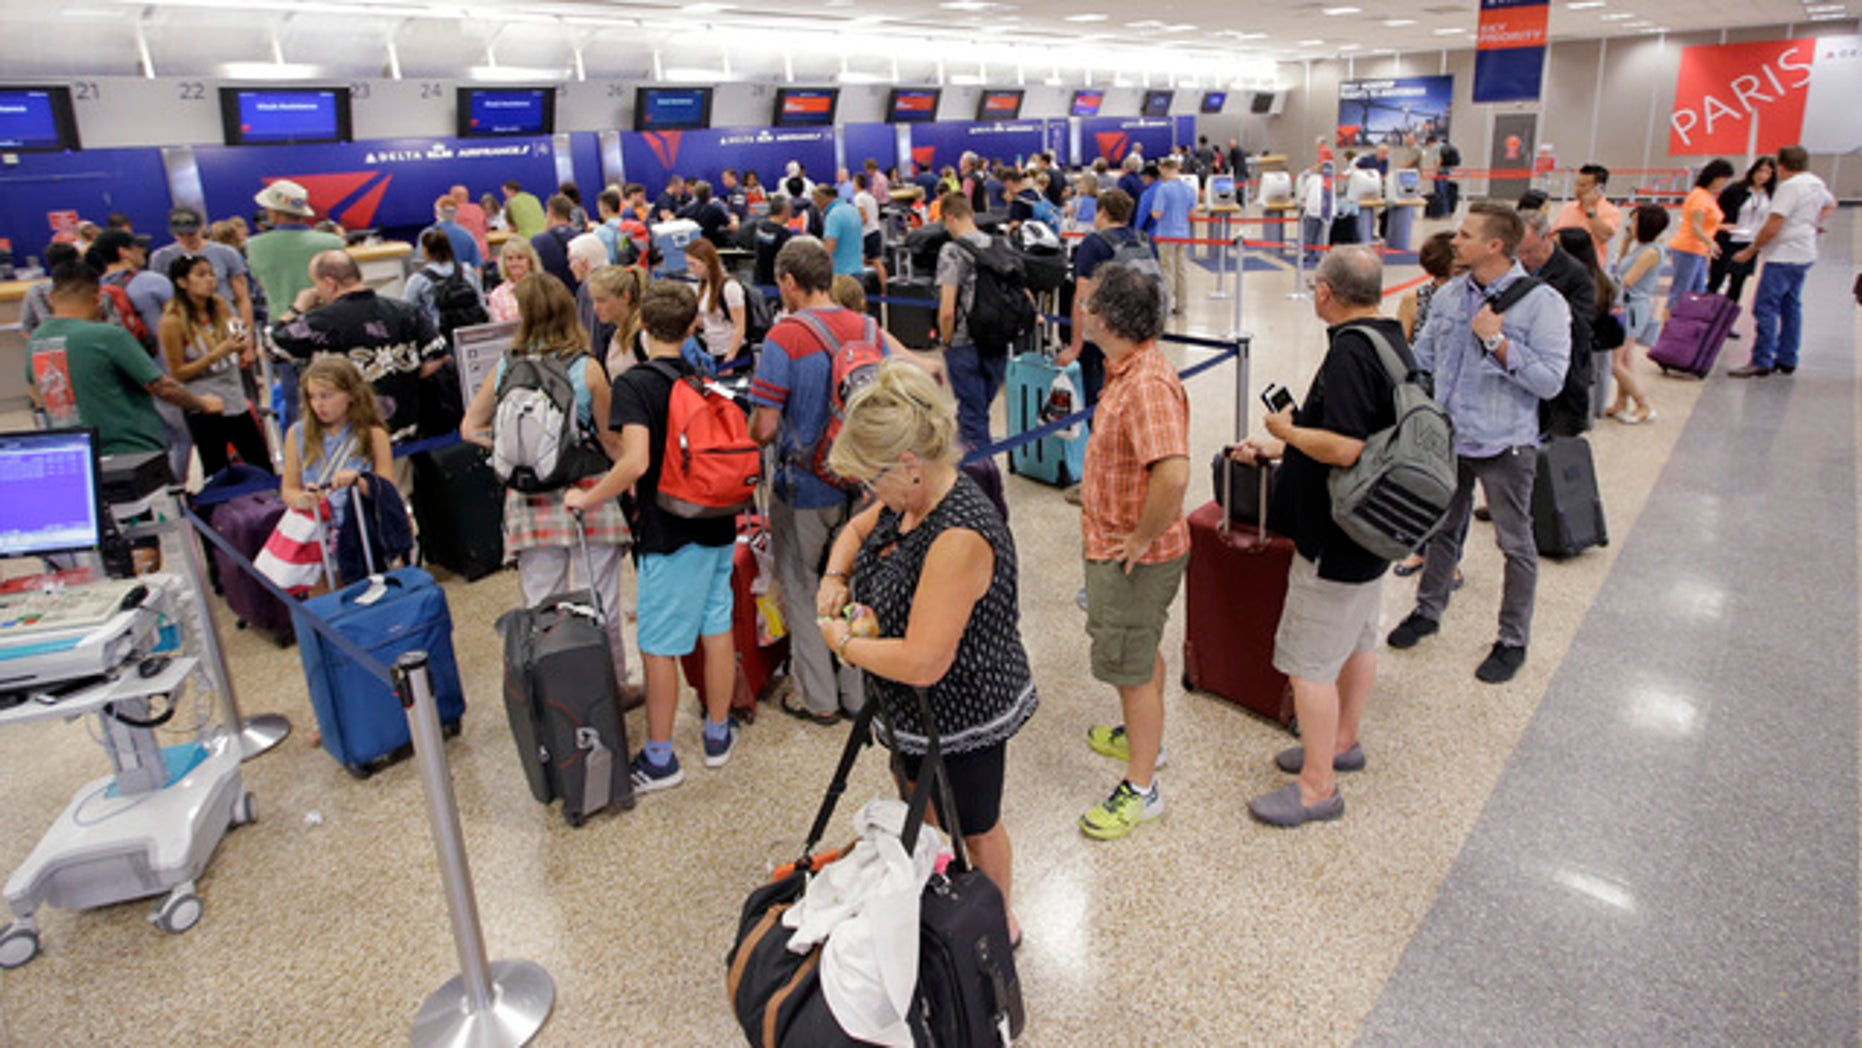 Delta Air Lines passengers stand in line after flights resumed Tuesday in Salt Lake City, Utah.